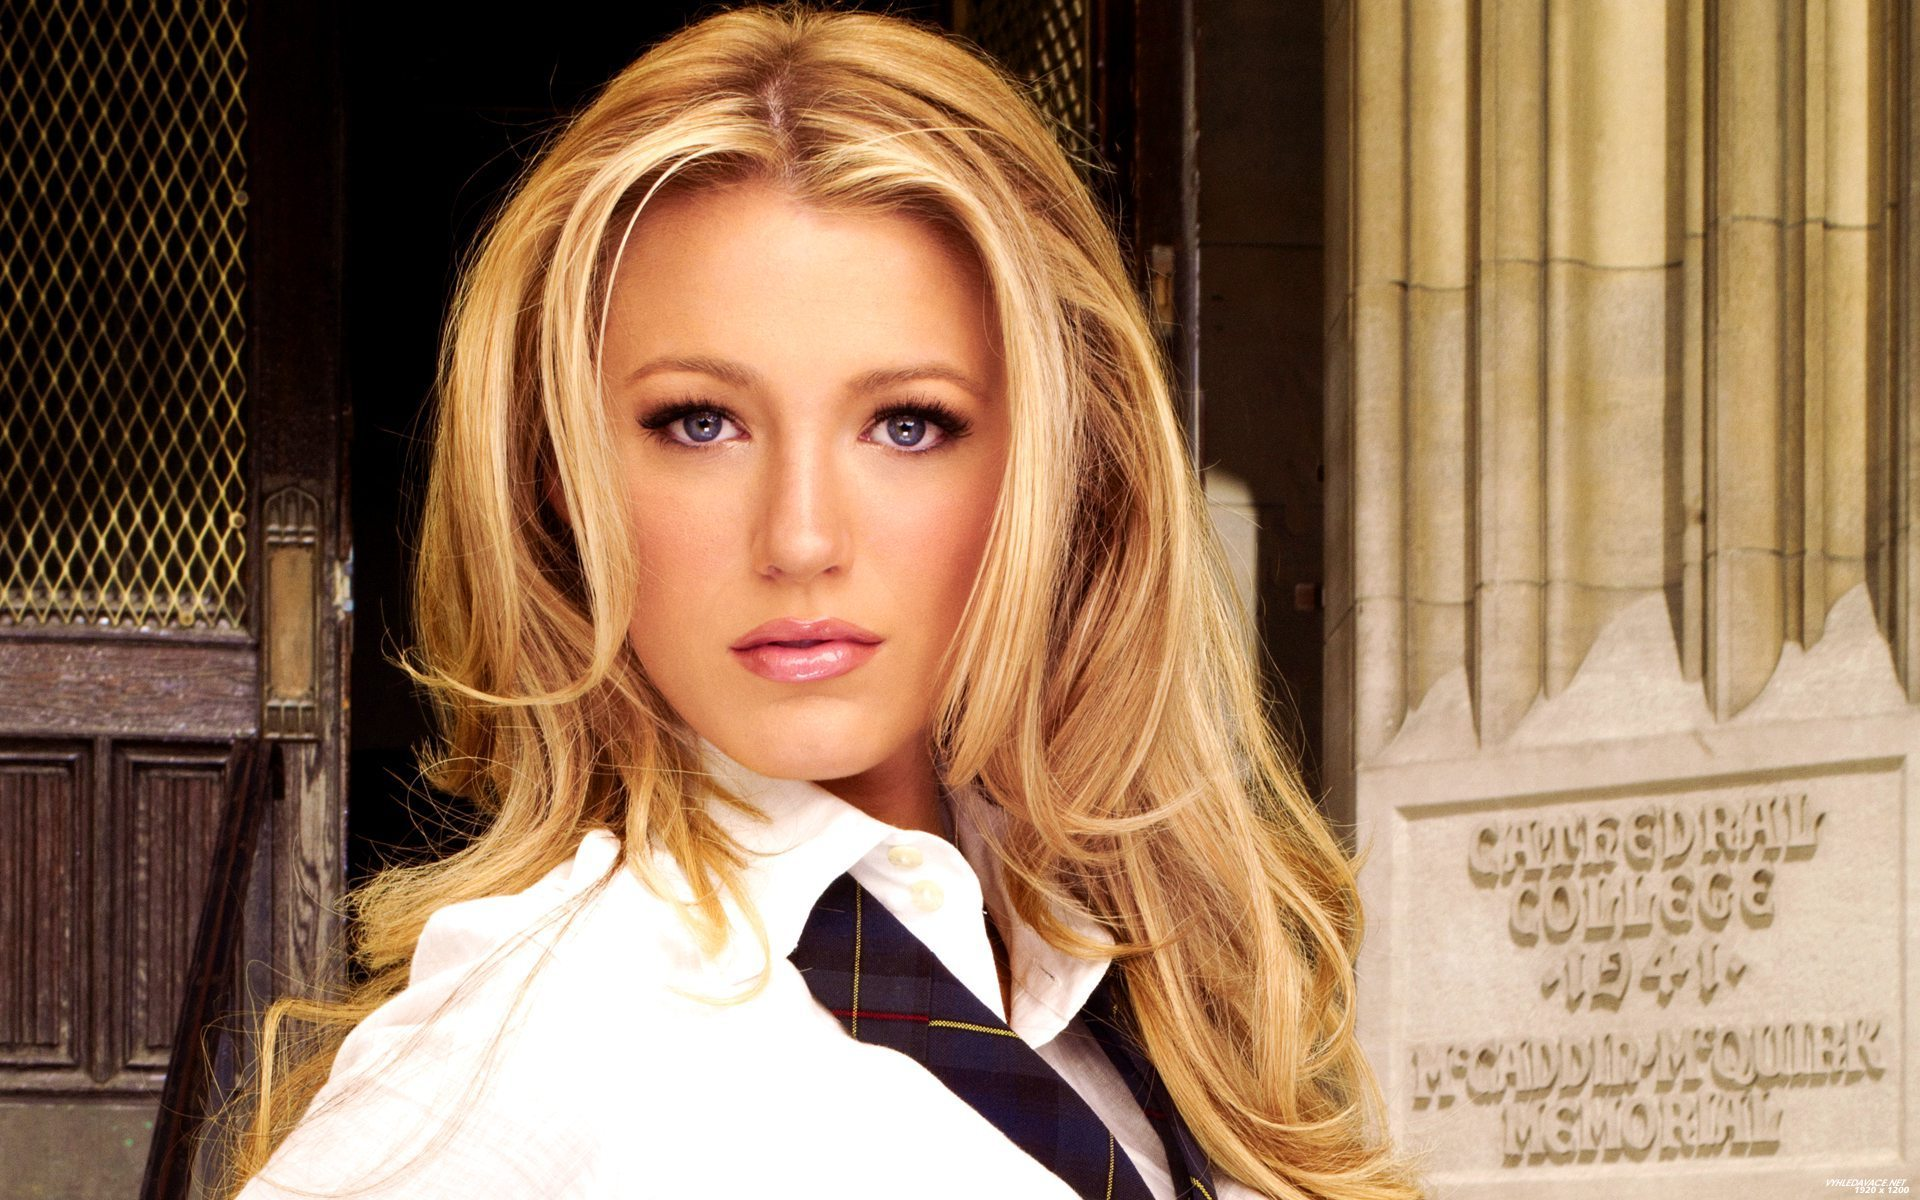 Blake Lively - Images Colection